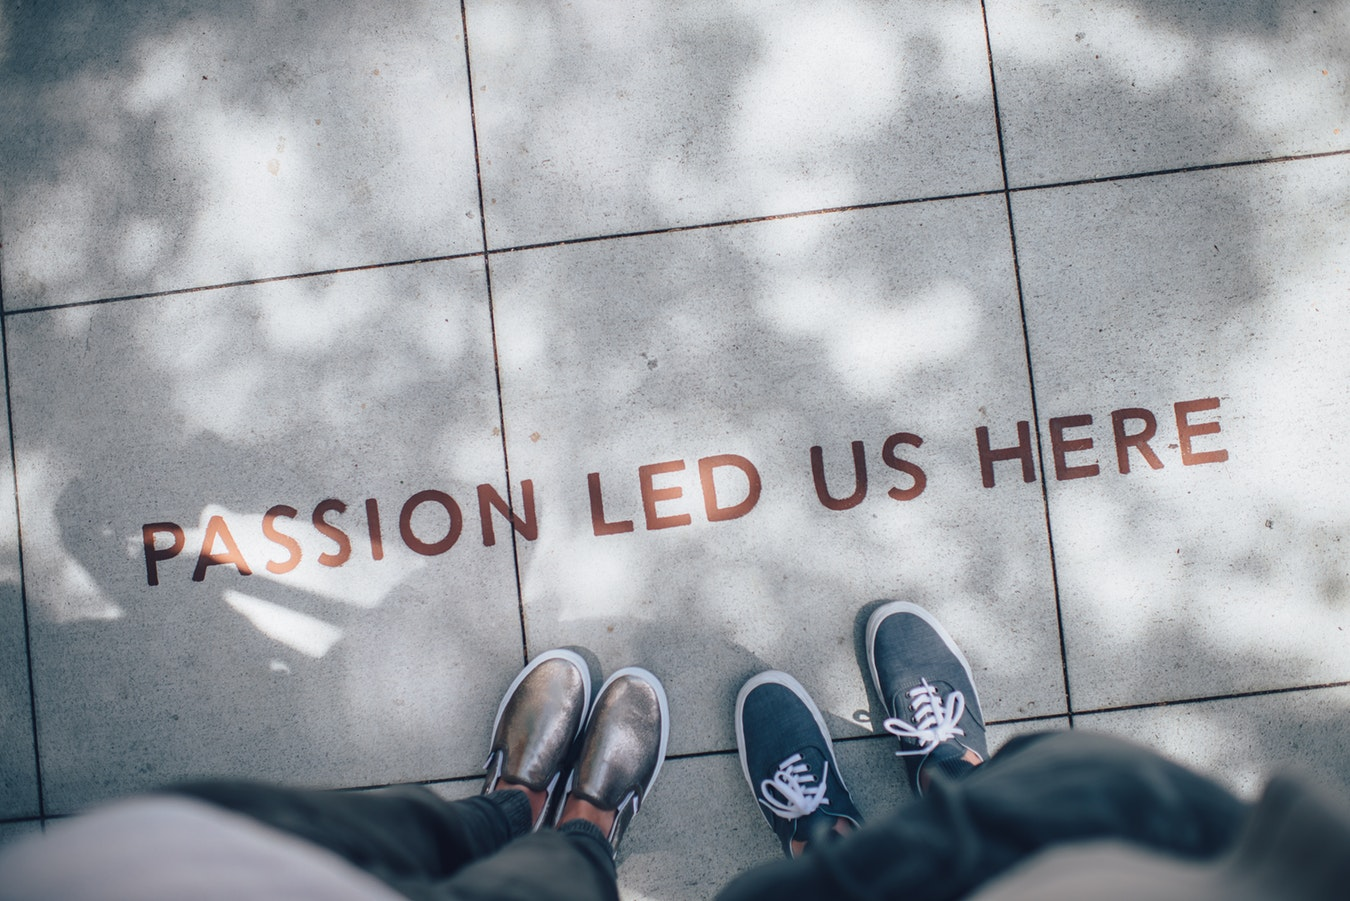 """Passion Led Us Here"" sidewalk inscription"